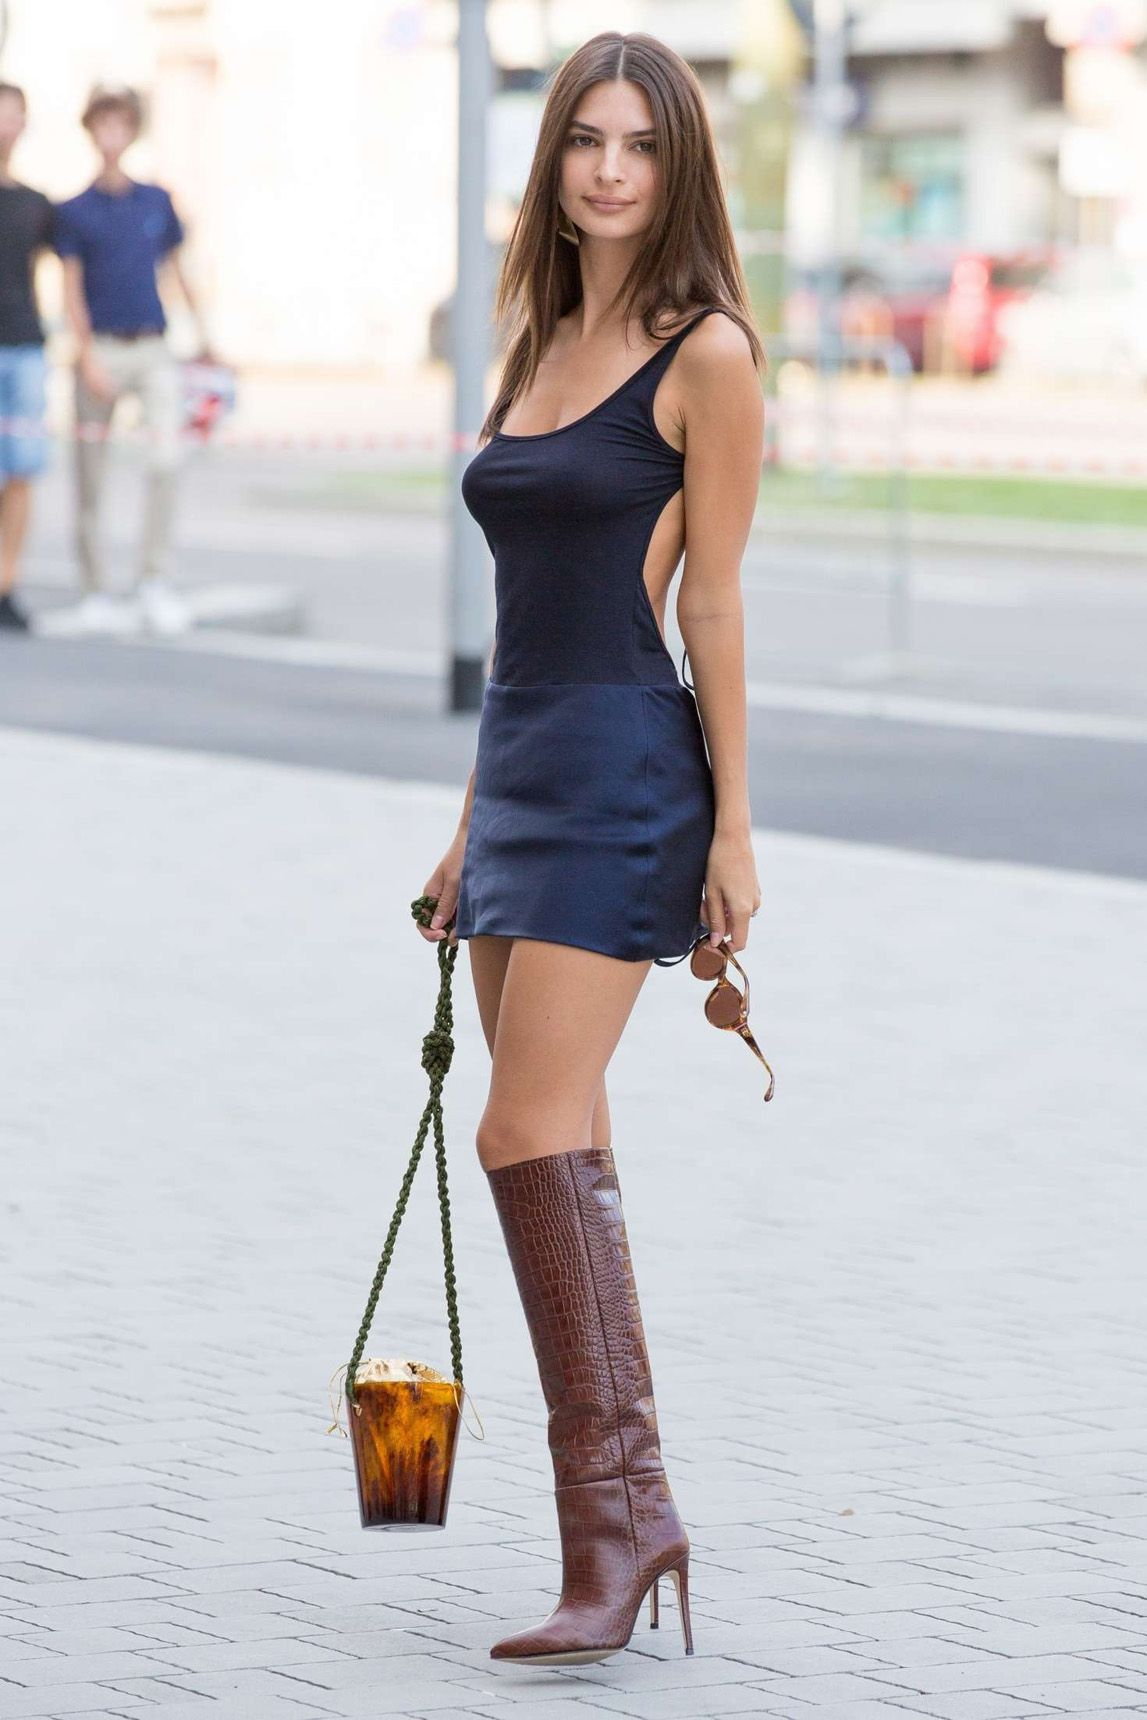 f645e7dd39 Emily Ratajkowski in Mini Dress Arriving at the Versace Show in Milan